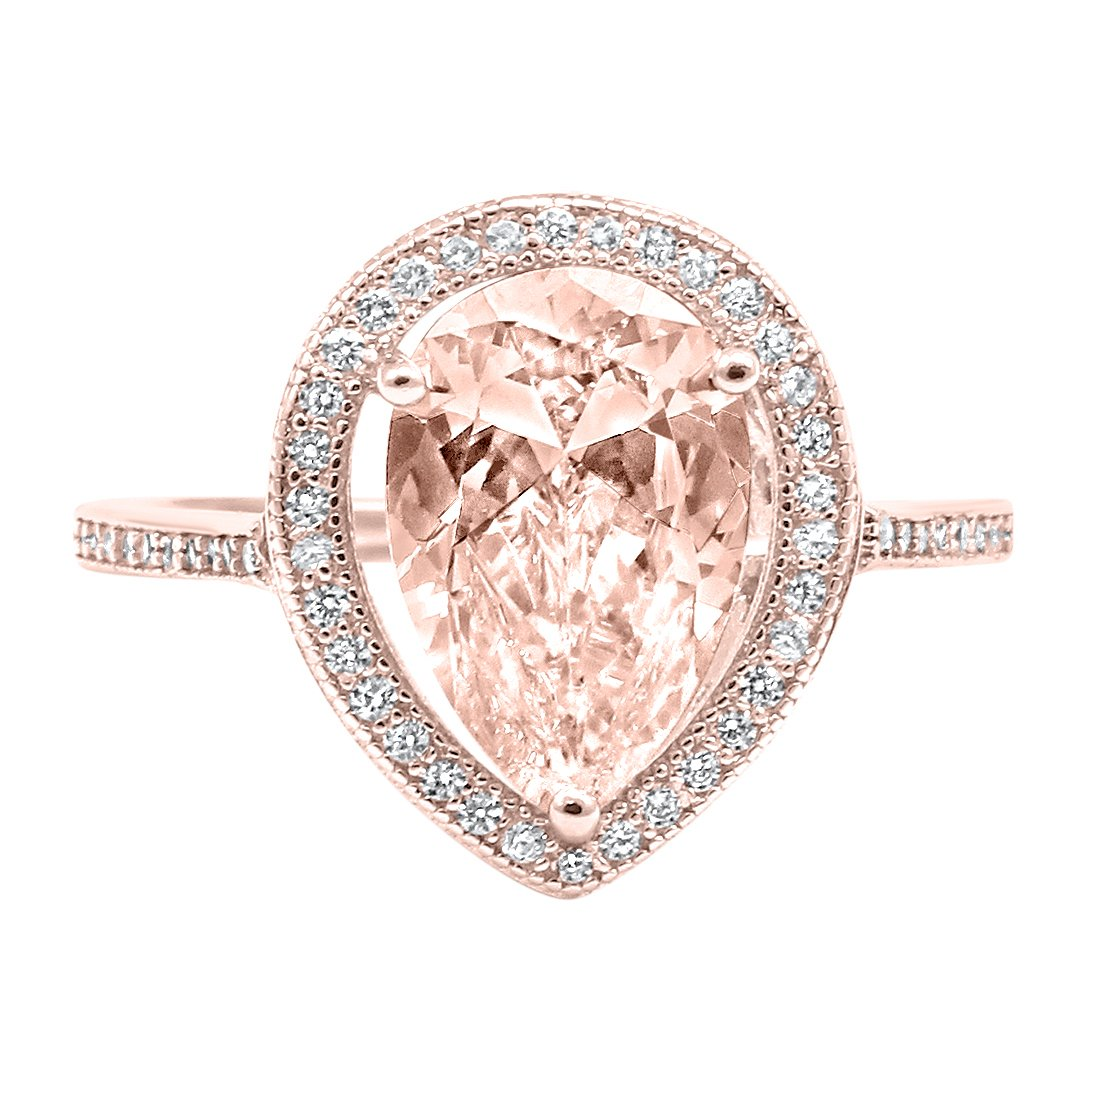 Halo Teardrop Pear Simulated Morganite Bridal Ring Rose Tone Plated 925 Sterling Silver, Size-7